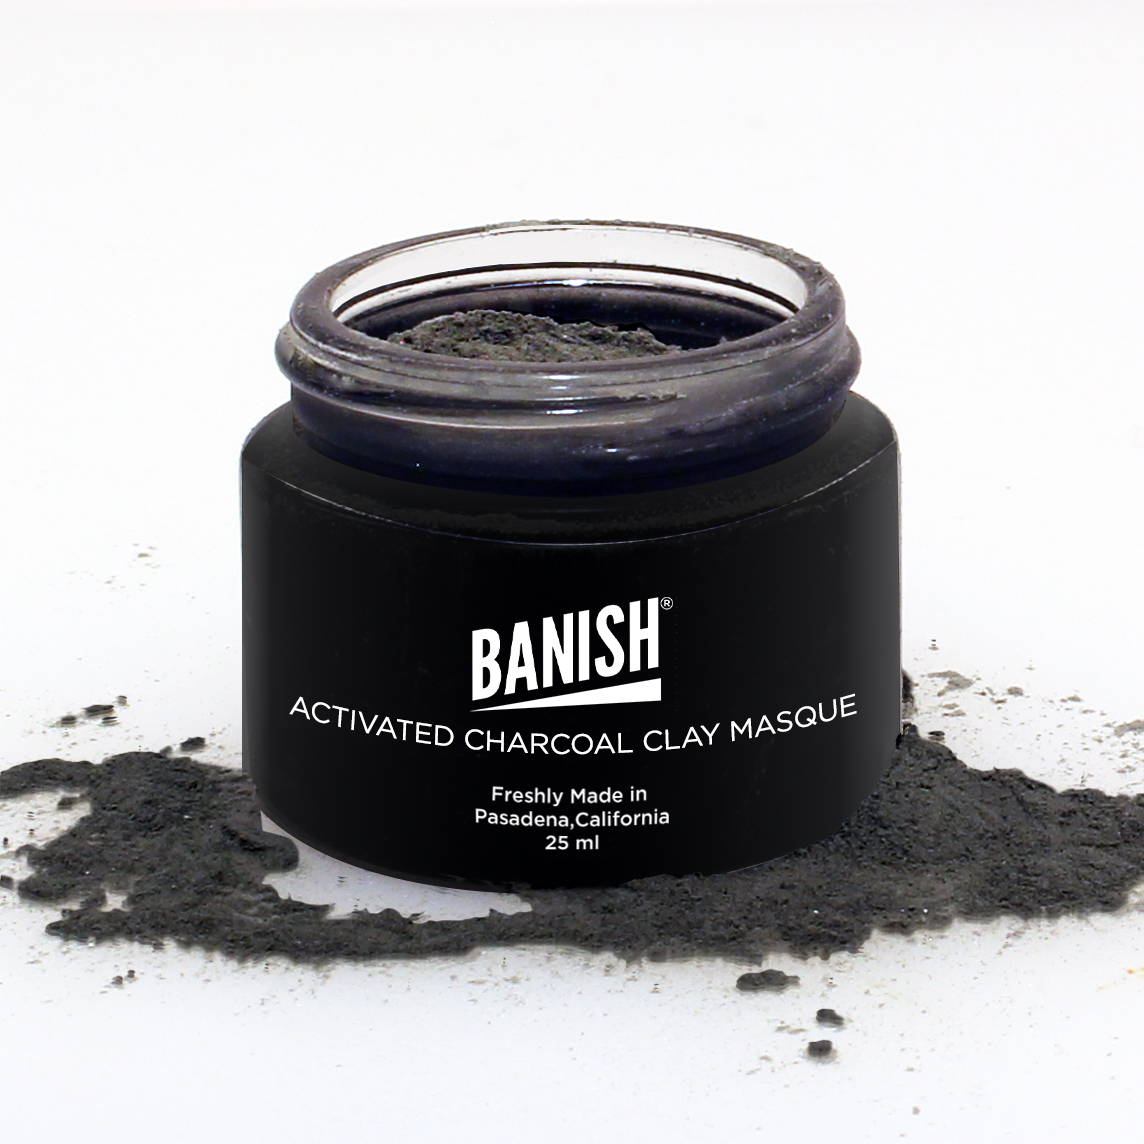 Activated Charcoal Clay Masque